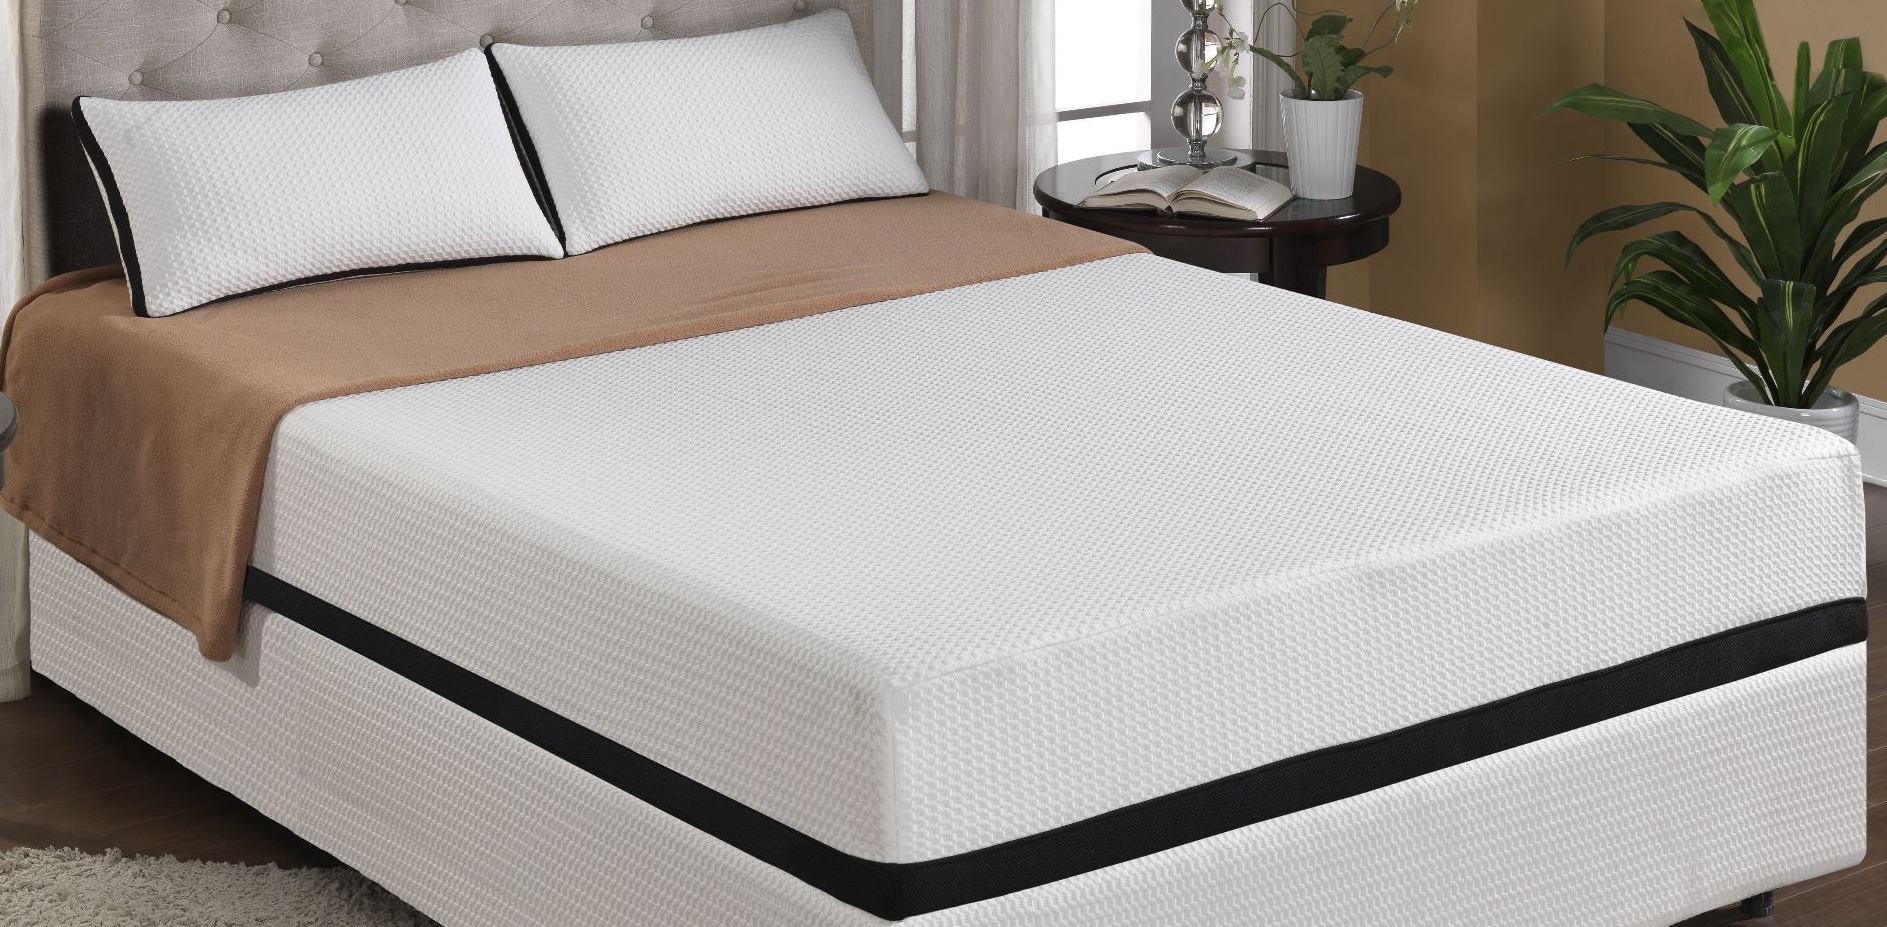 beds cool jewel moonlight queen 10 gel memory foam mattress